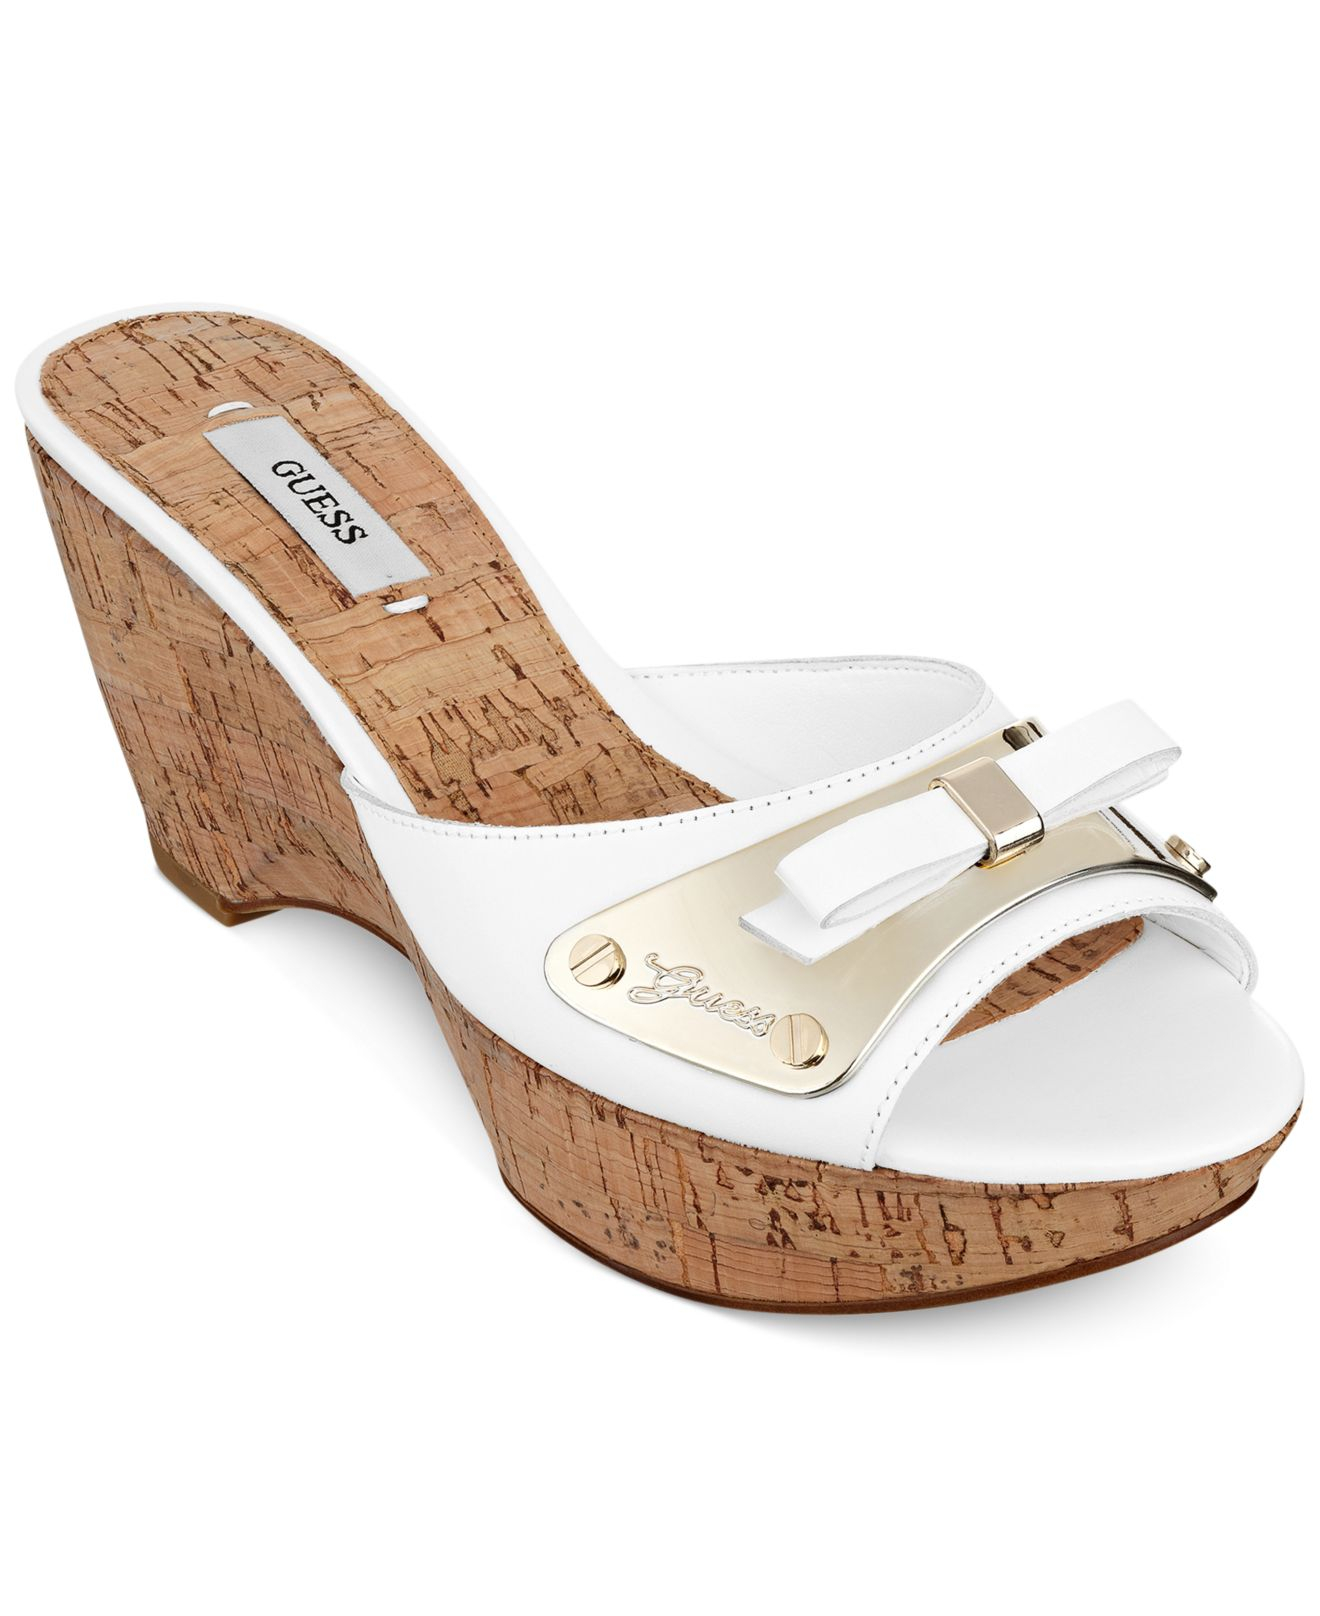 74450b82cd2bf6 Lyst - Guess Women S Rea Platform Slide Sandals in White